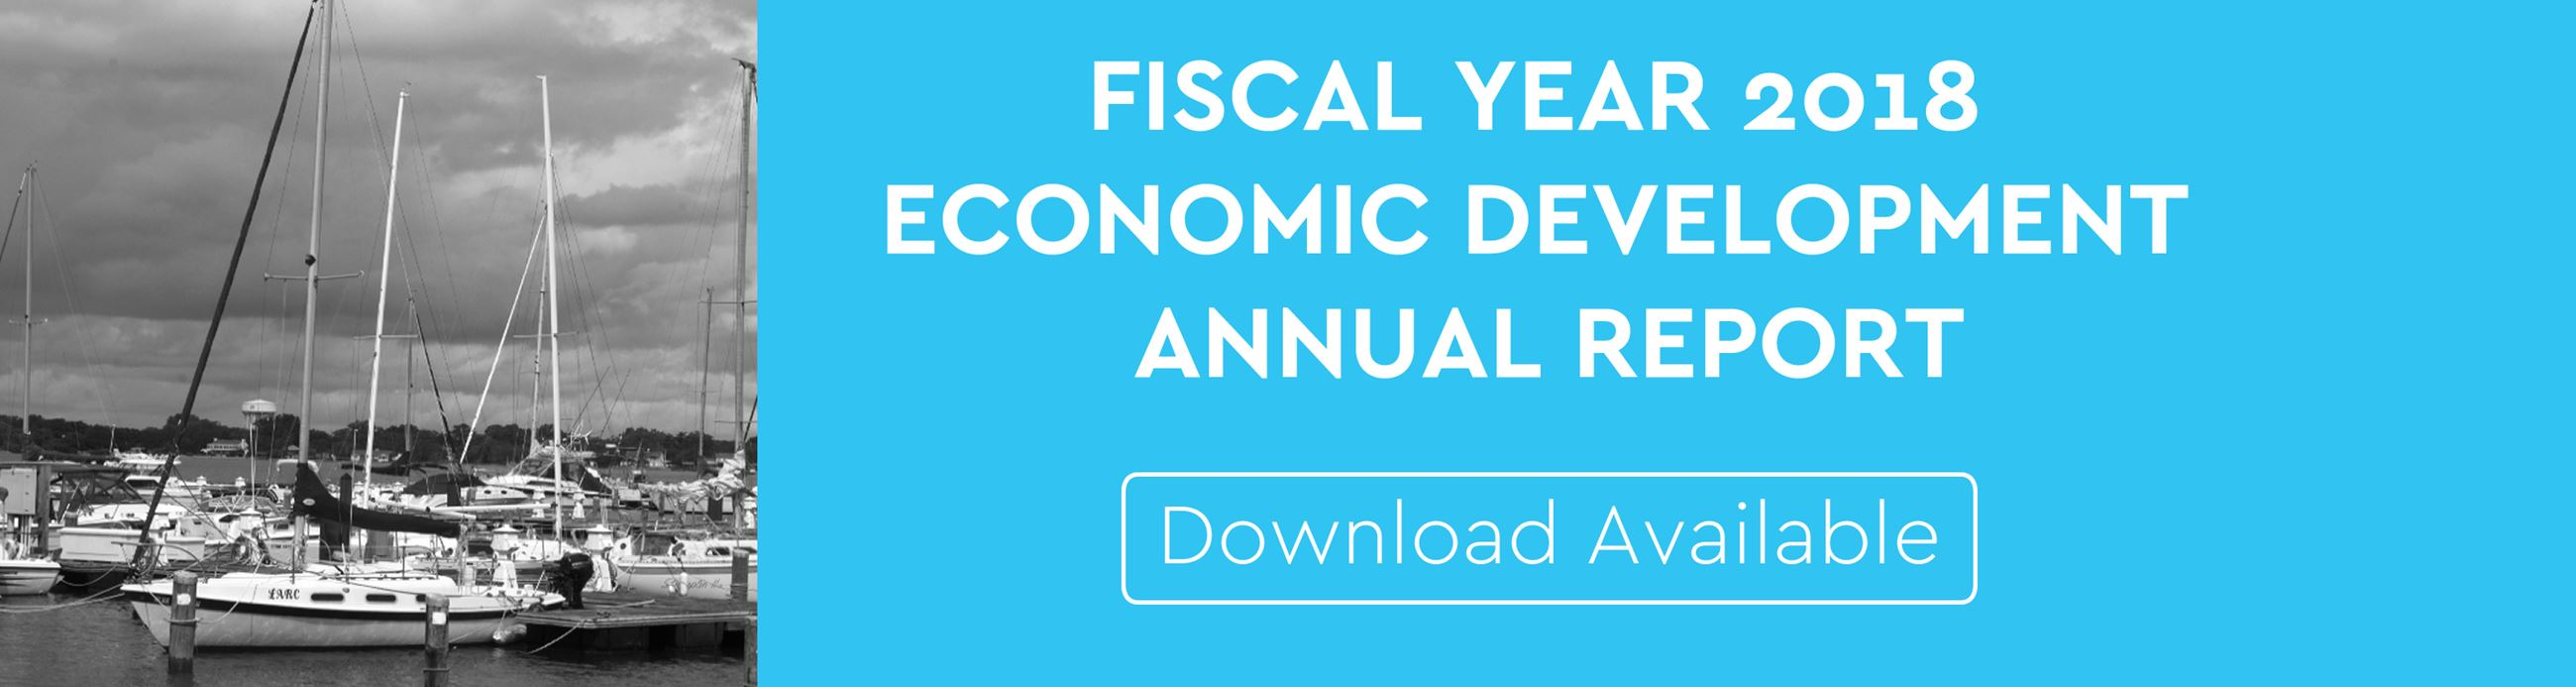 FY18 Economic Development Annual Report